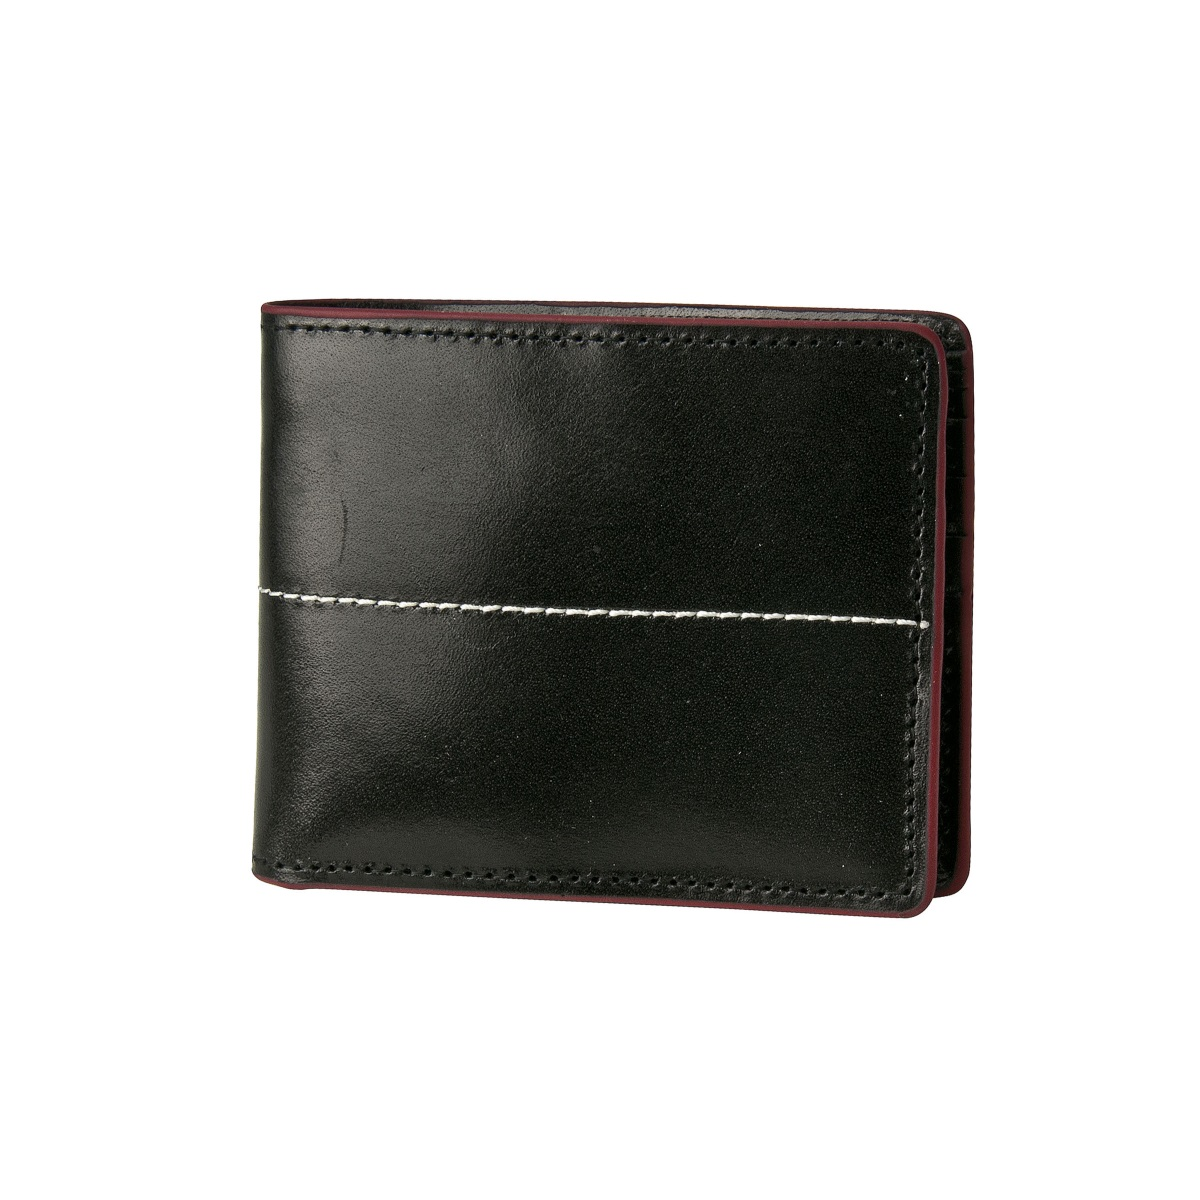 J.FOLD Thunderbird Leather Wallet - Black/Red